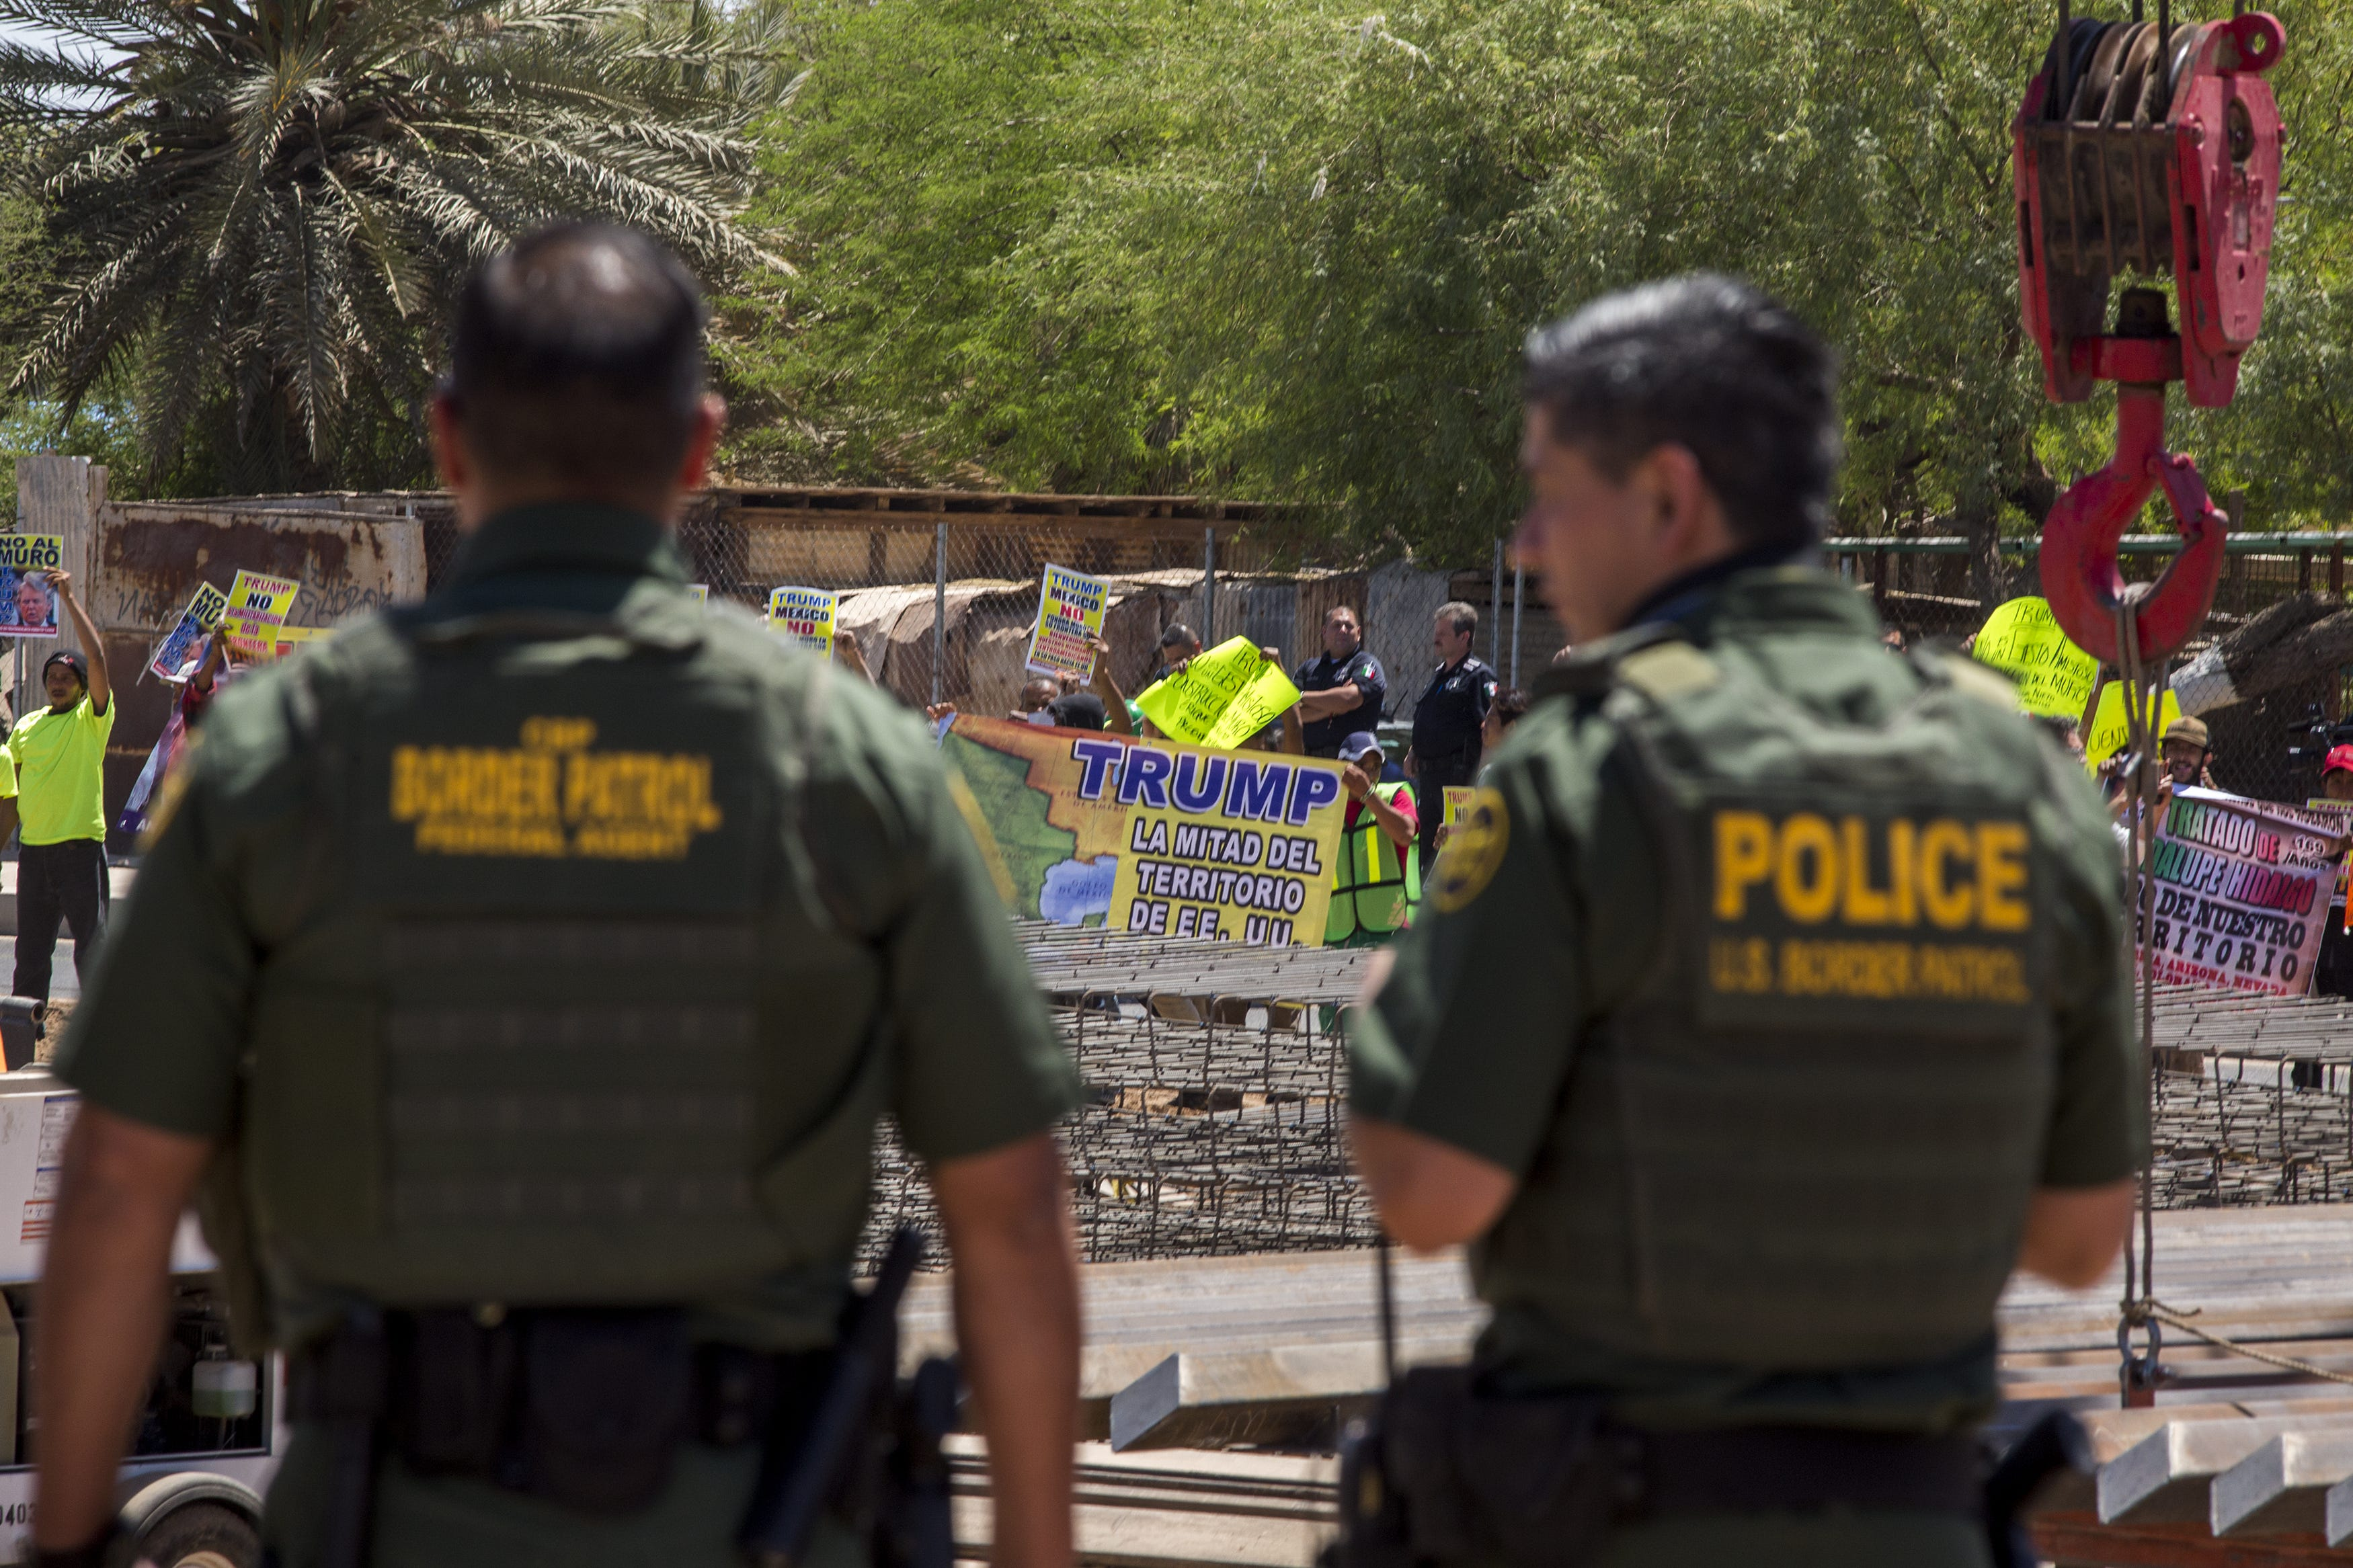 Homeland Security chief denies policy separates families at border